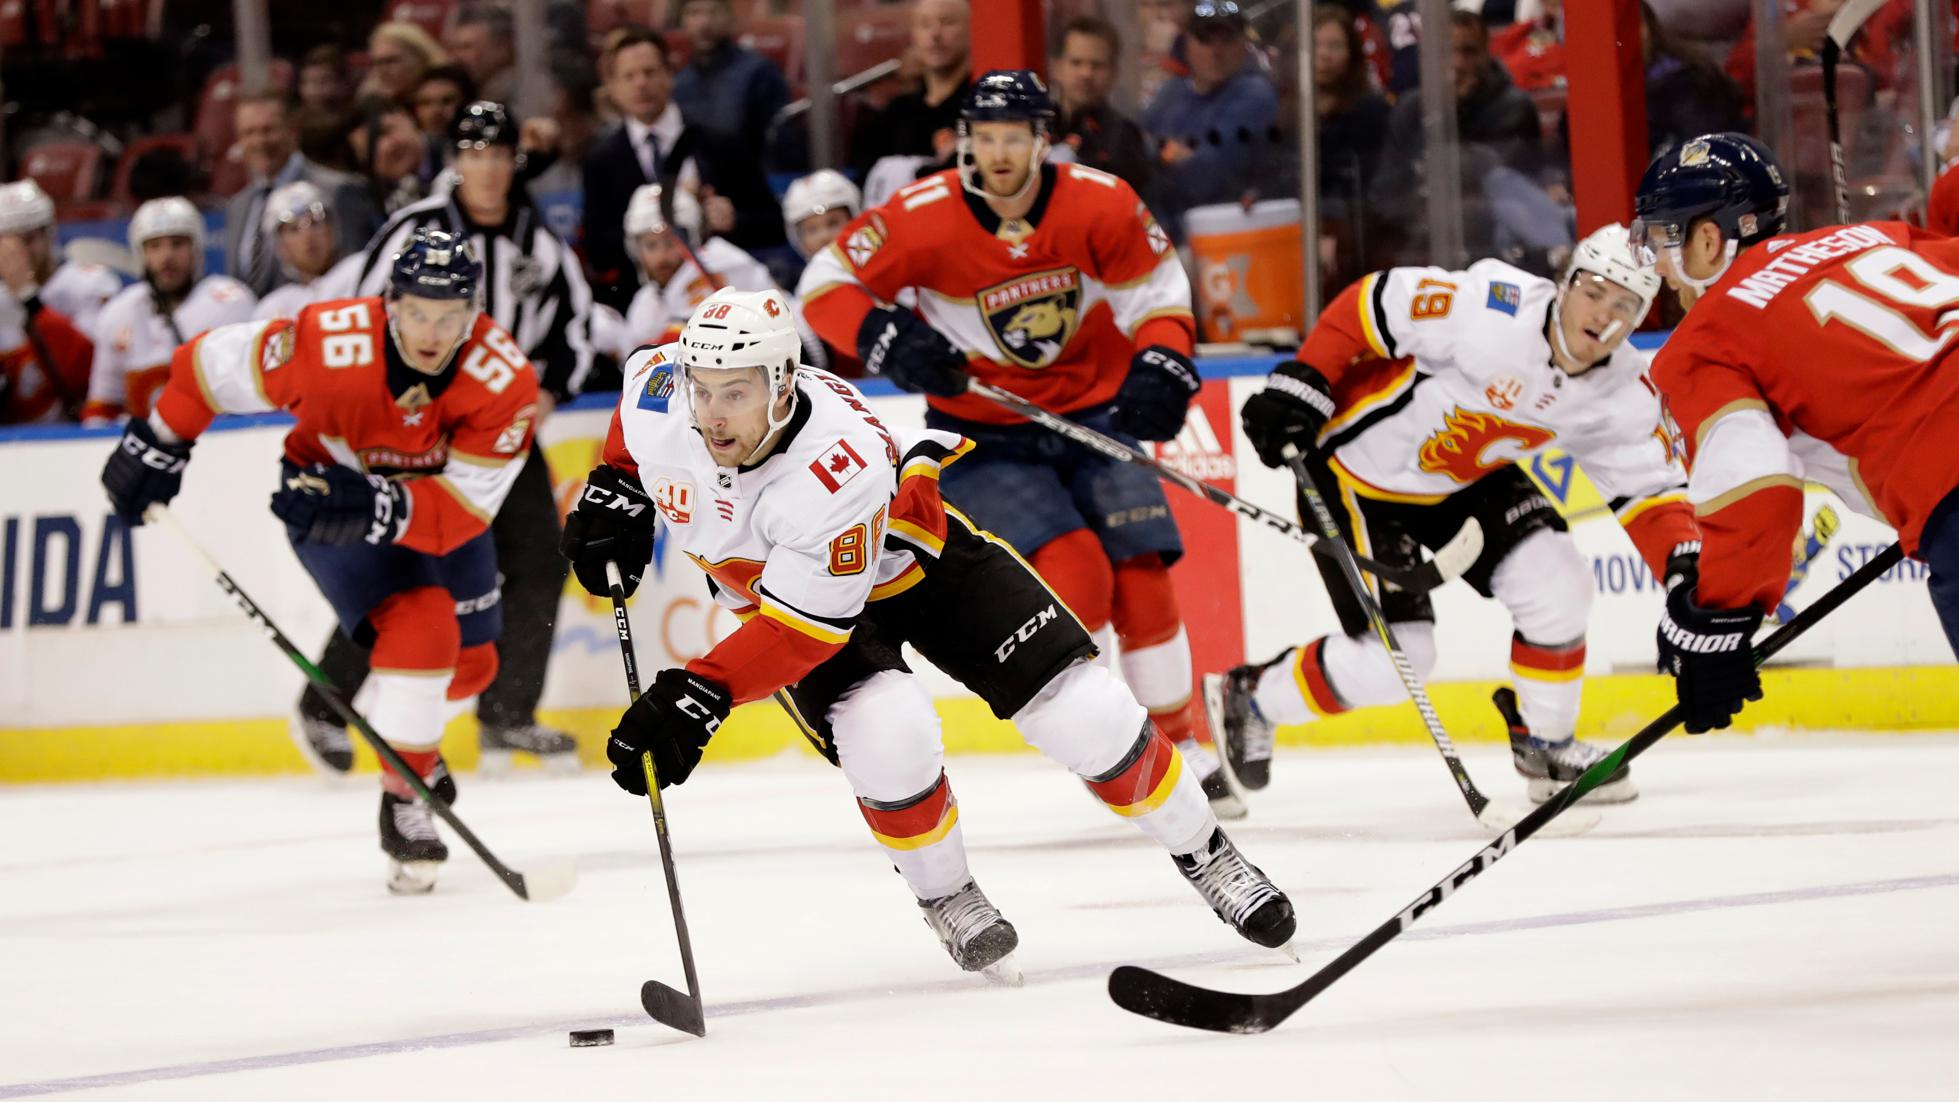 Calgary Flames left wing Andrew Mangiapane (88) takes the puck down the ice during the first period of an NHL hockey game against the Florida Panthers, Sunday, March 1, 2020, in Sunrise, Fla. (AP Photo/Wilfredo Lee)